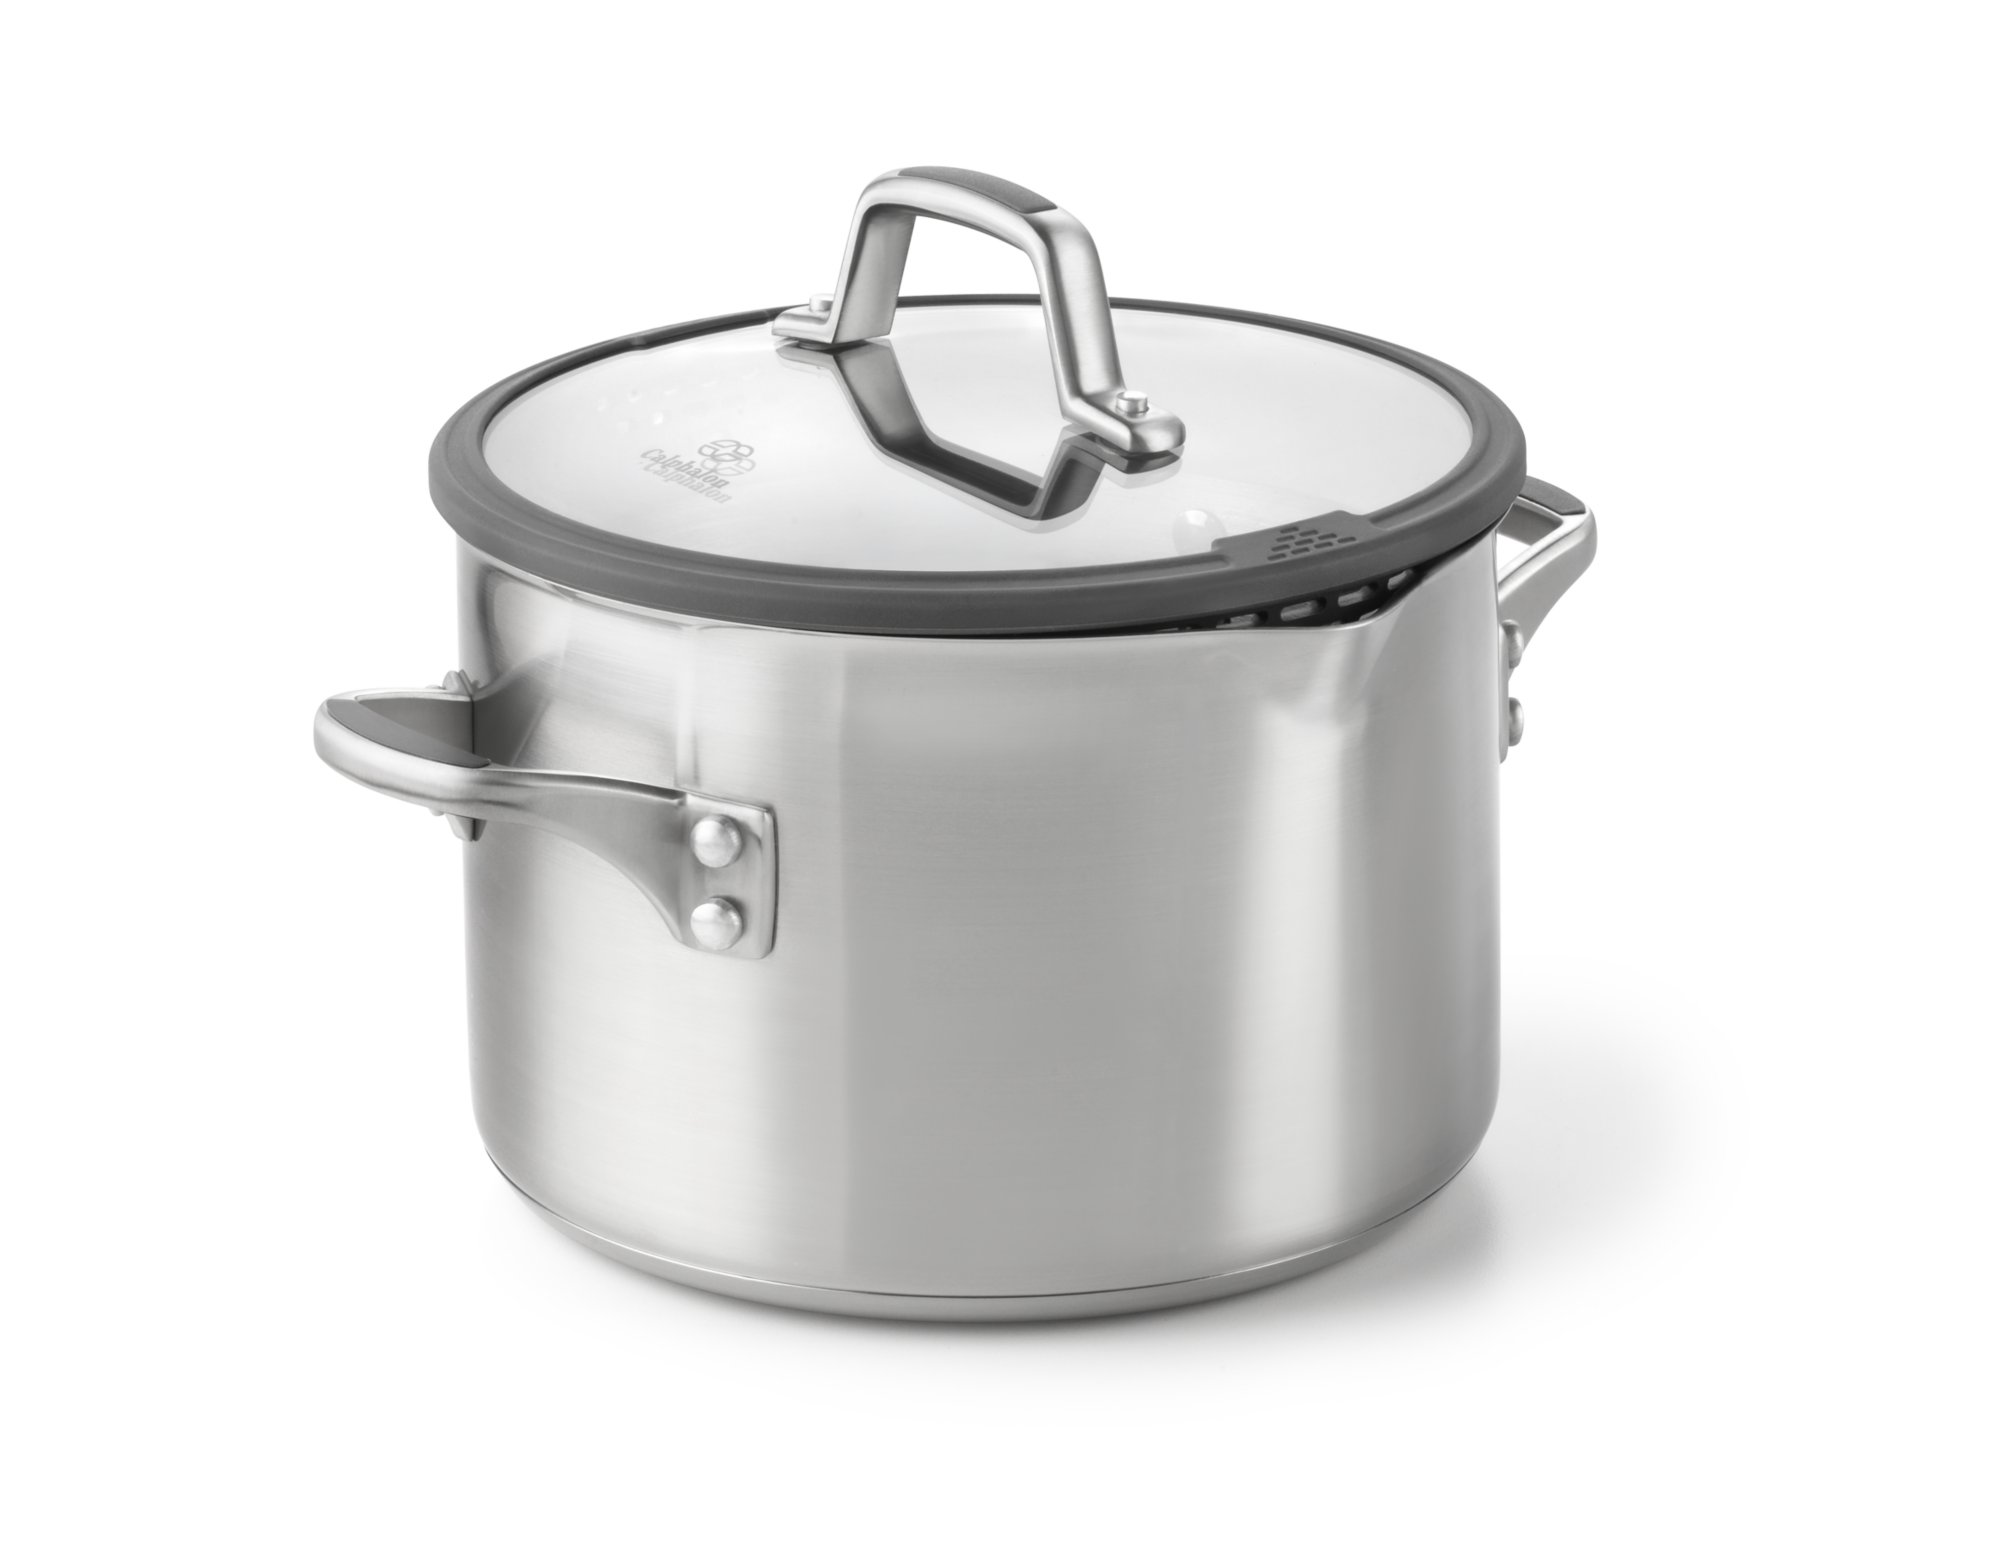 Simply Calphalon Easy System Stainless Steel 6-qt. Stock Pot with Cover